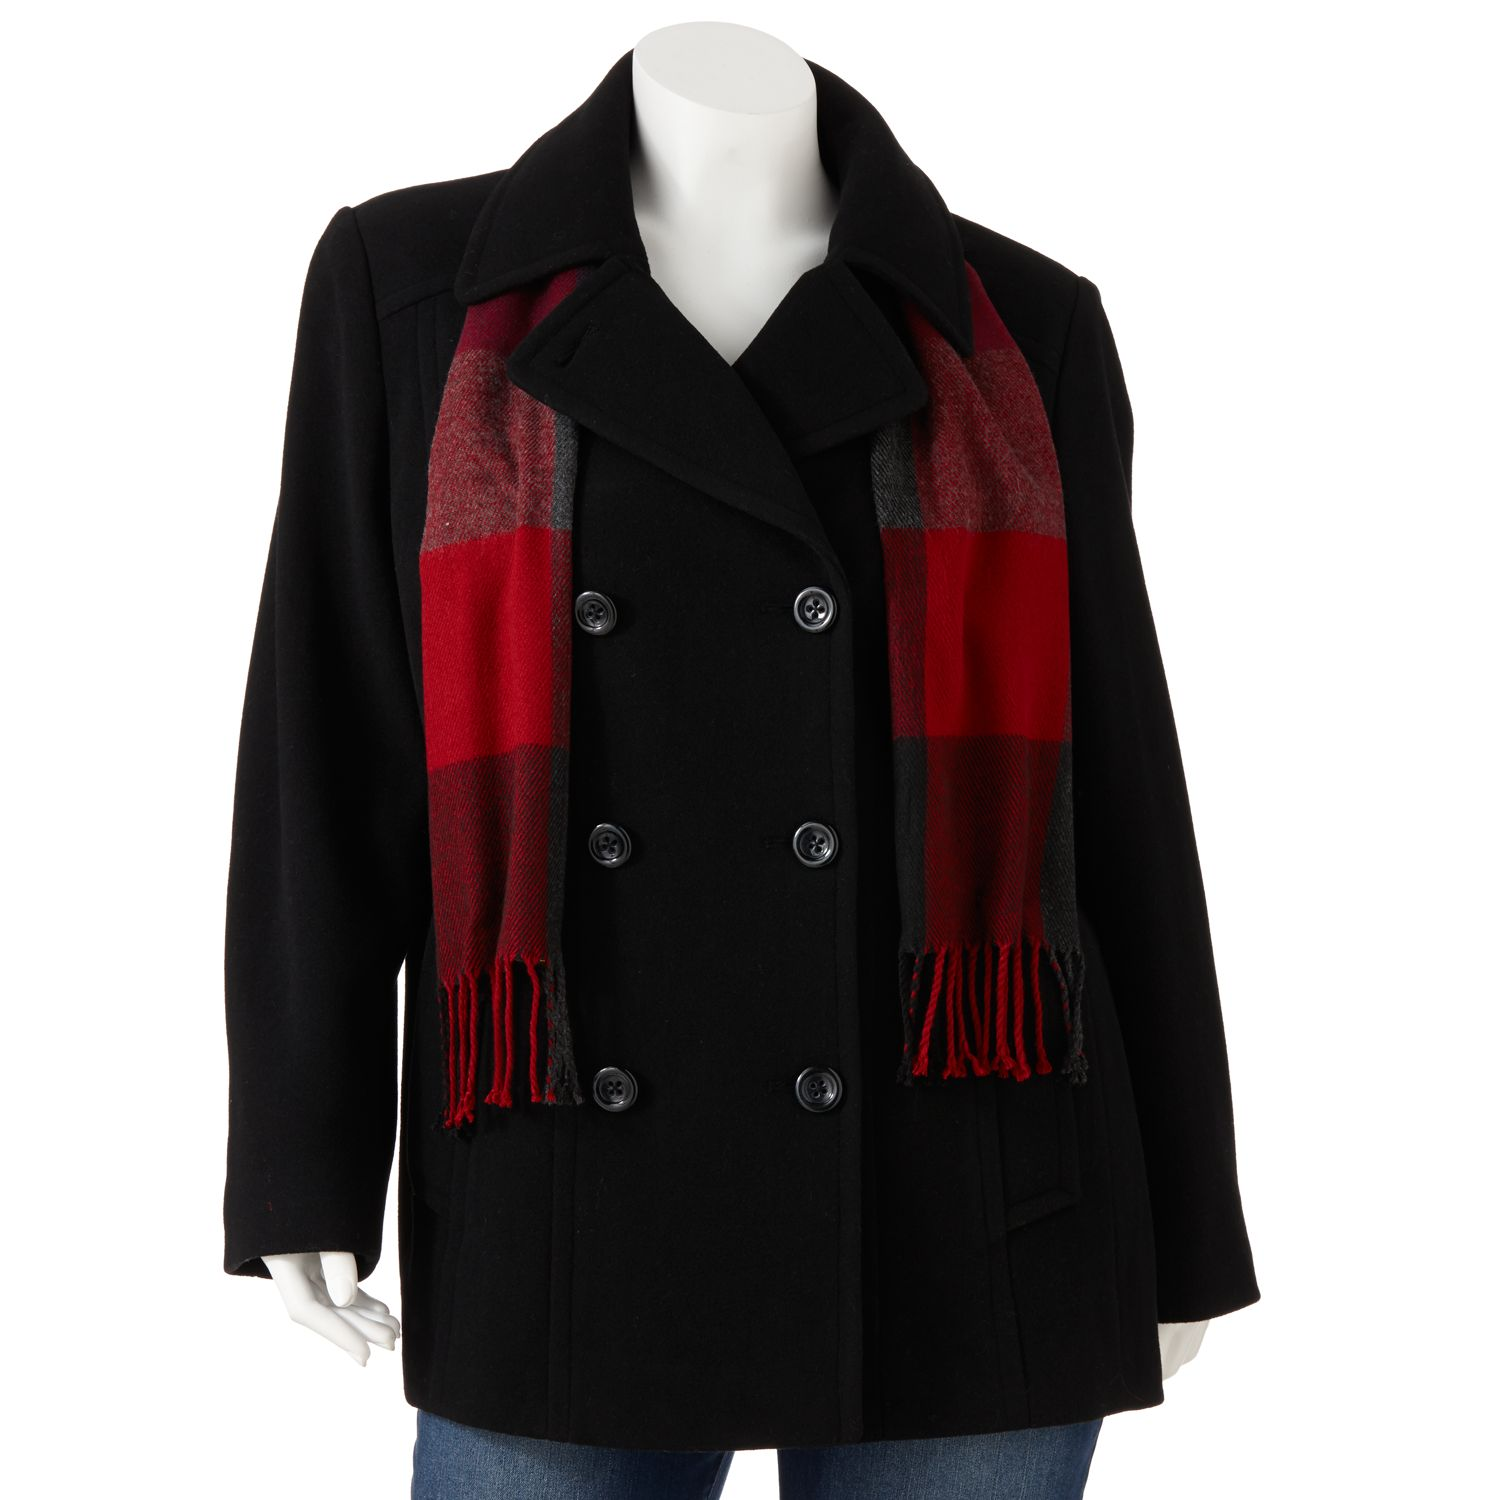 Croft & Barrow Wool-Blend Peacoat - Women's Plus